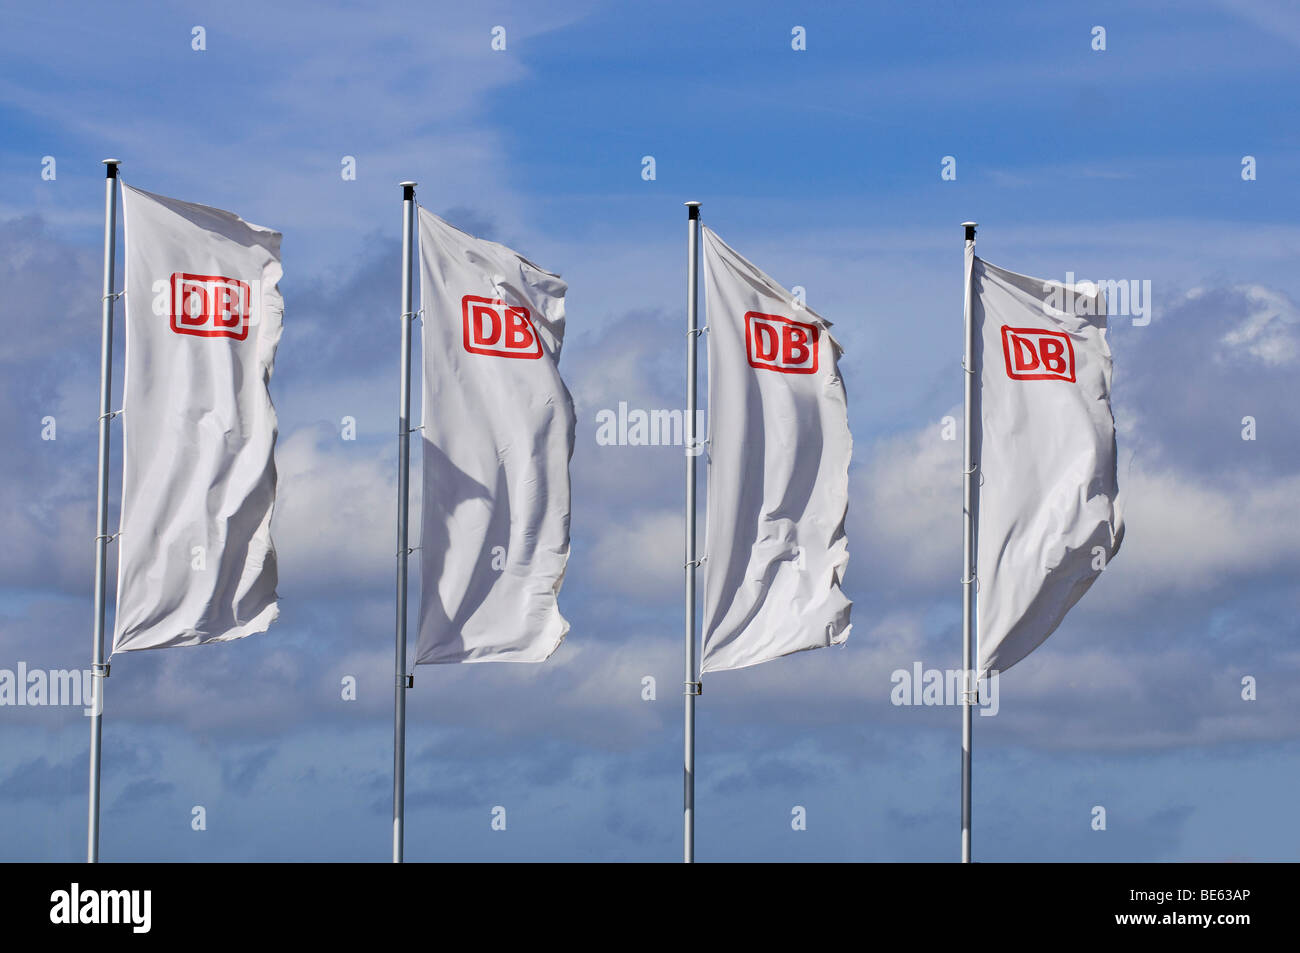 Four windblown white flags with the logo of DB, German Railways, in front of a sunny sky - Stock Image